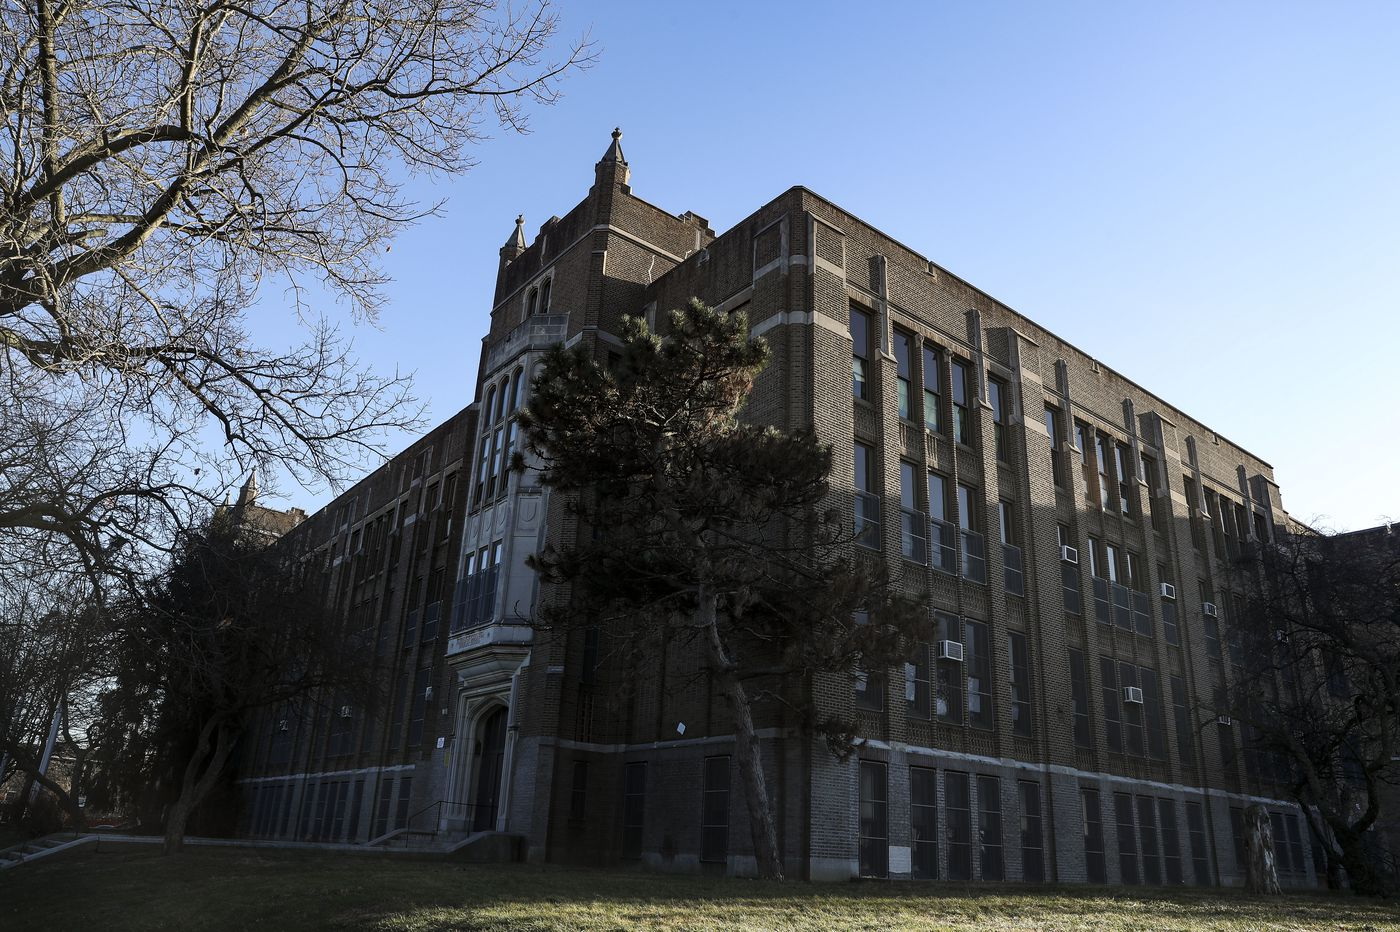 Philly elementary school to remain closed for asbestos cleanup